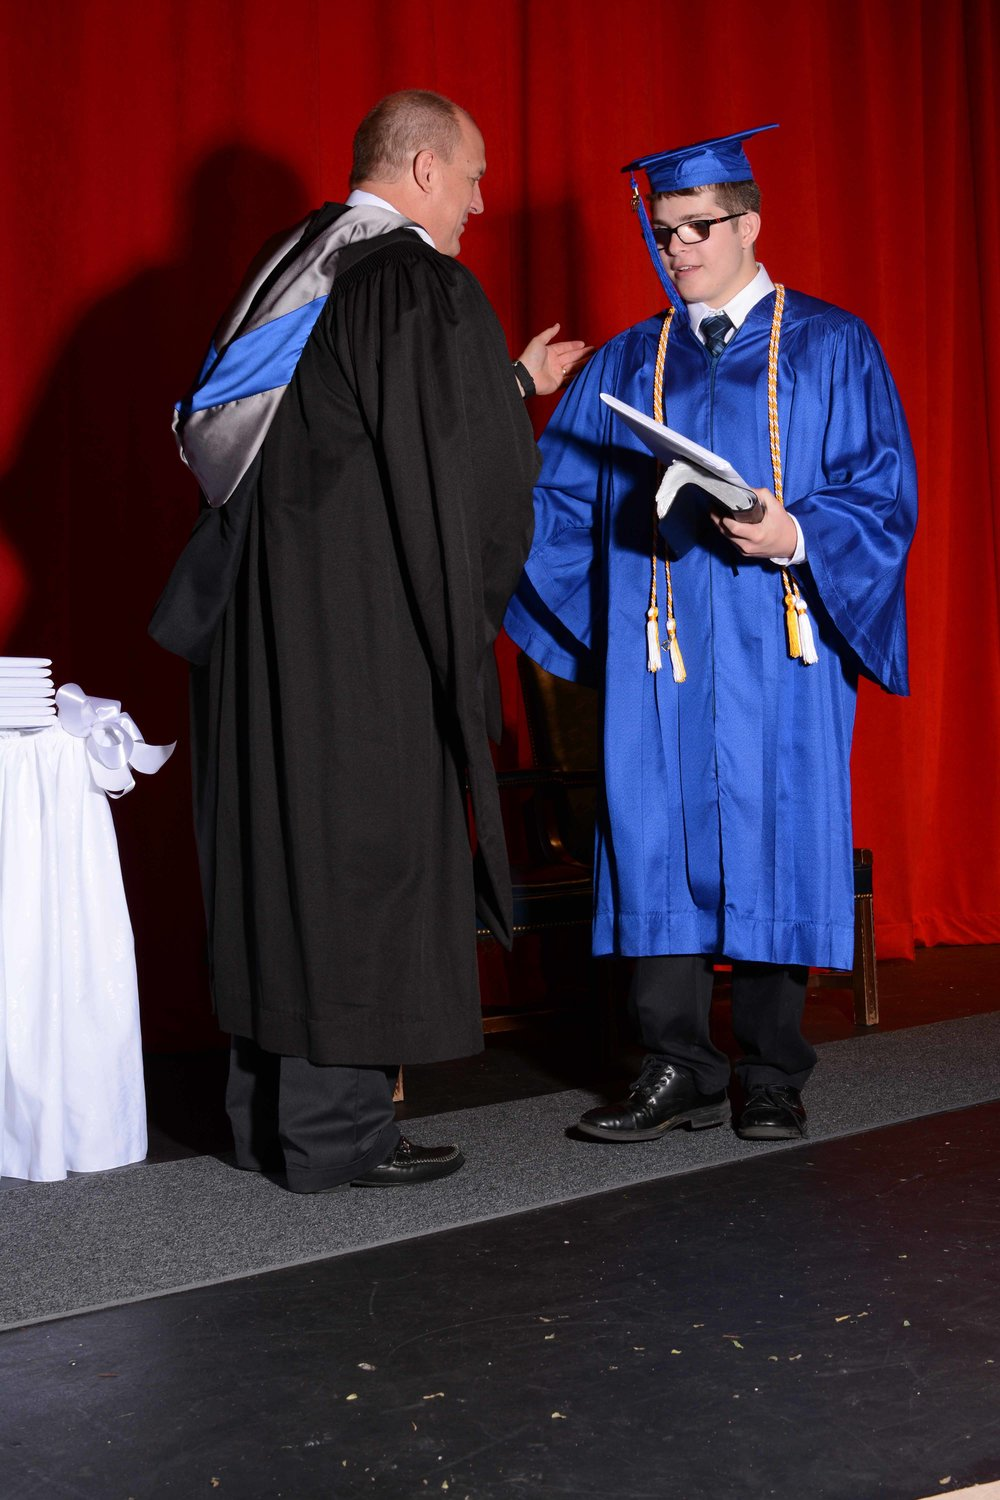 May15 HardingGraduation46.jpg